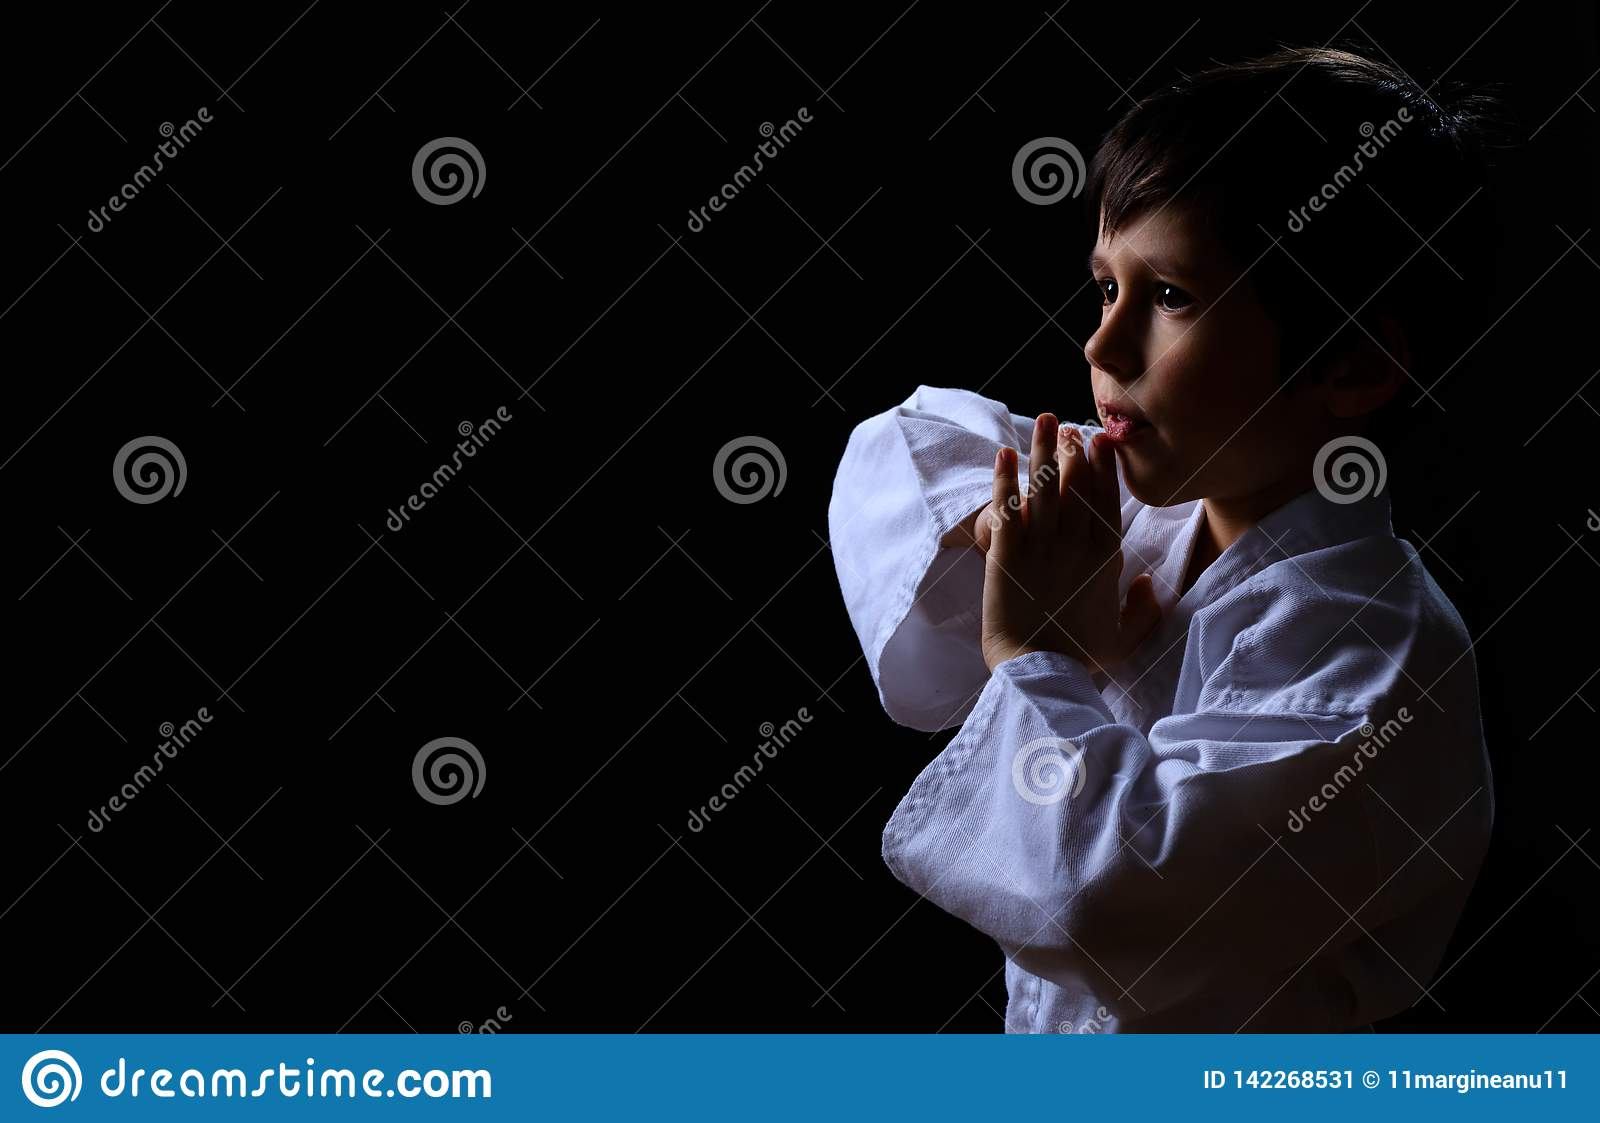 Little karate kid in white kimono isolated on dark background. Portrait of boy ready for martial arts fight. Child fighting at